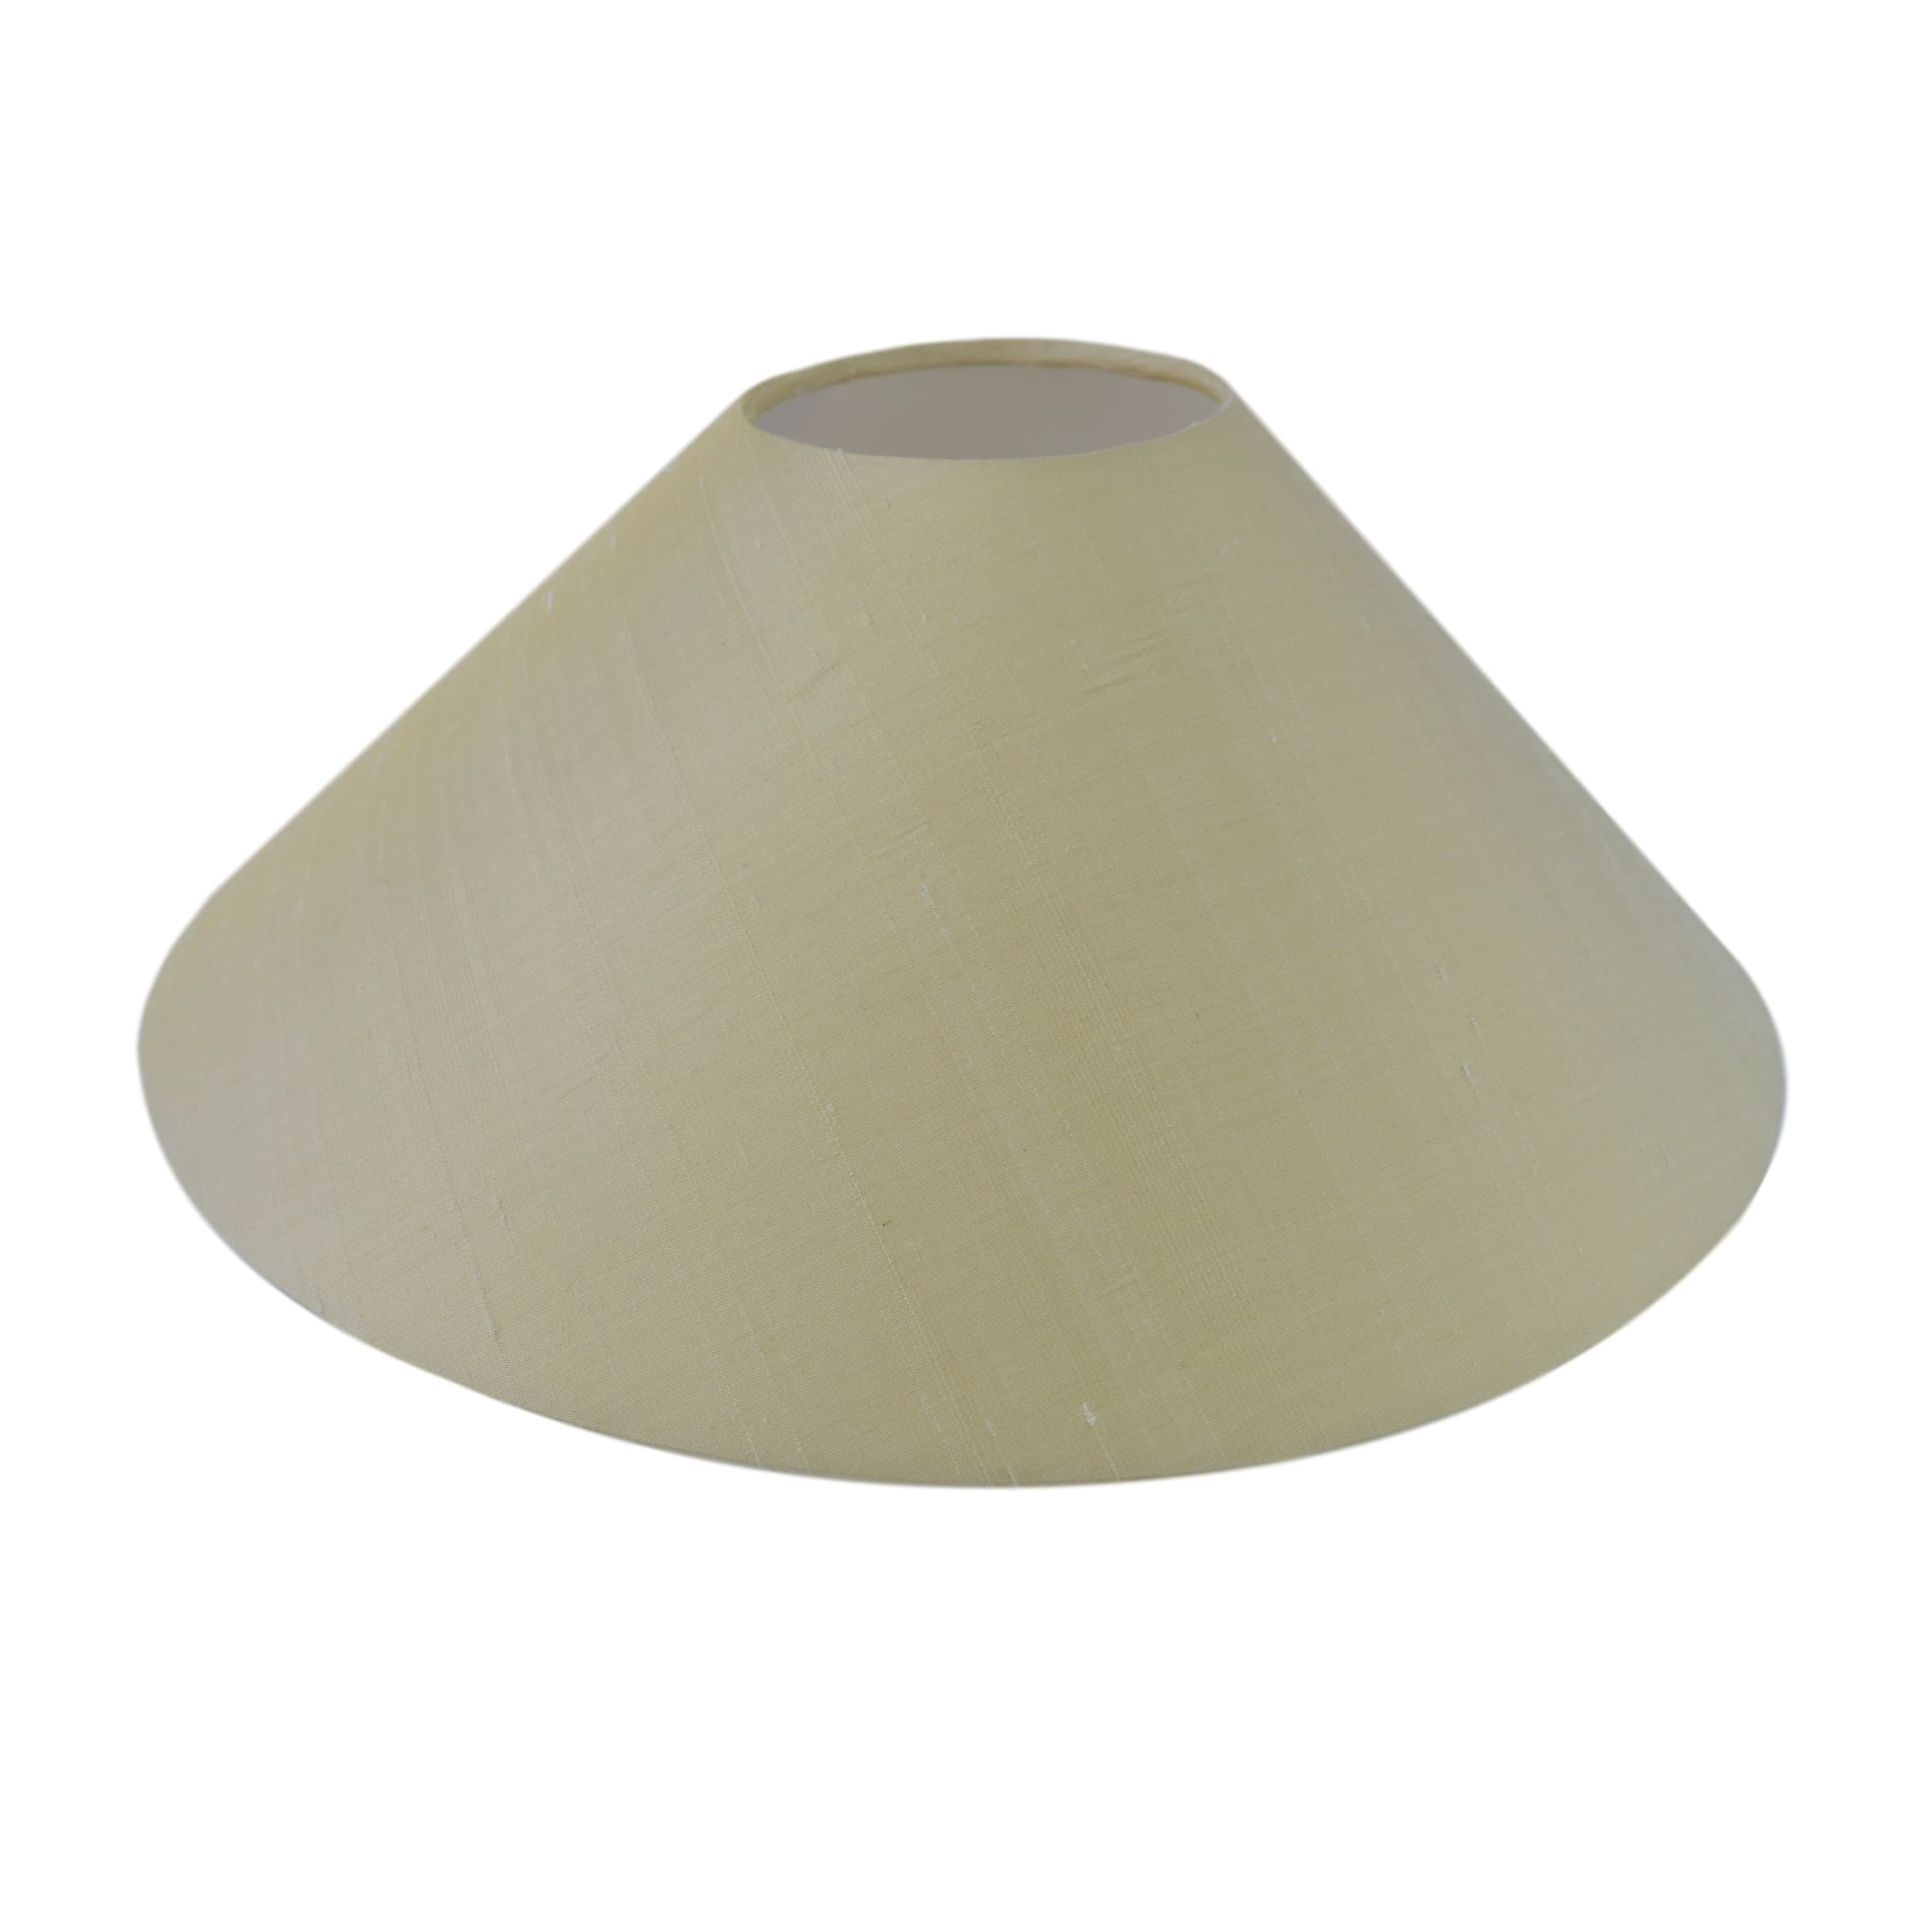 Munro and Kerr customers own material coolie lampshade